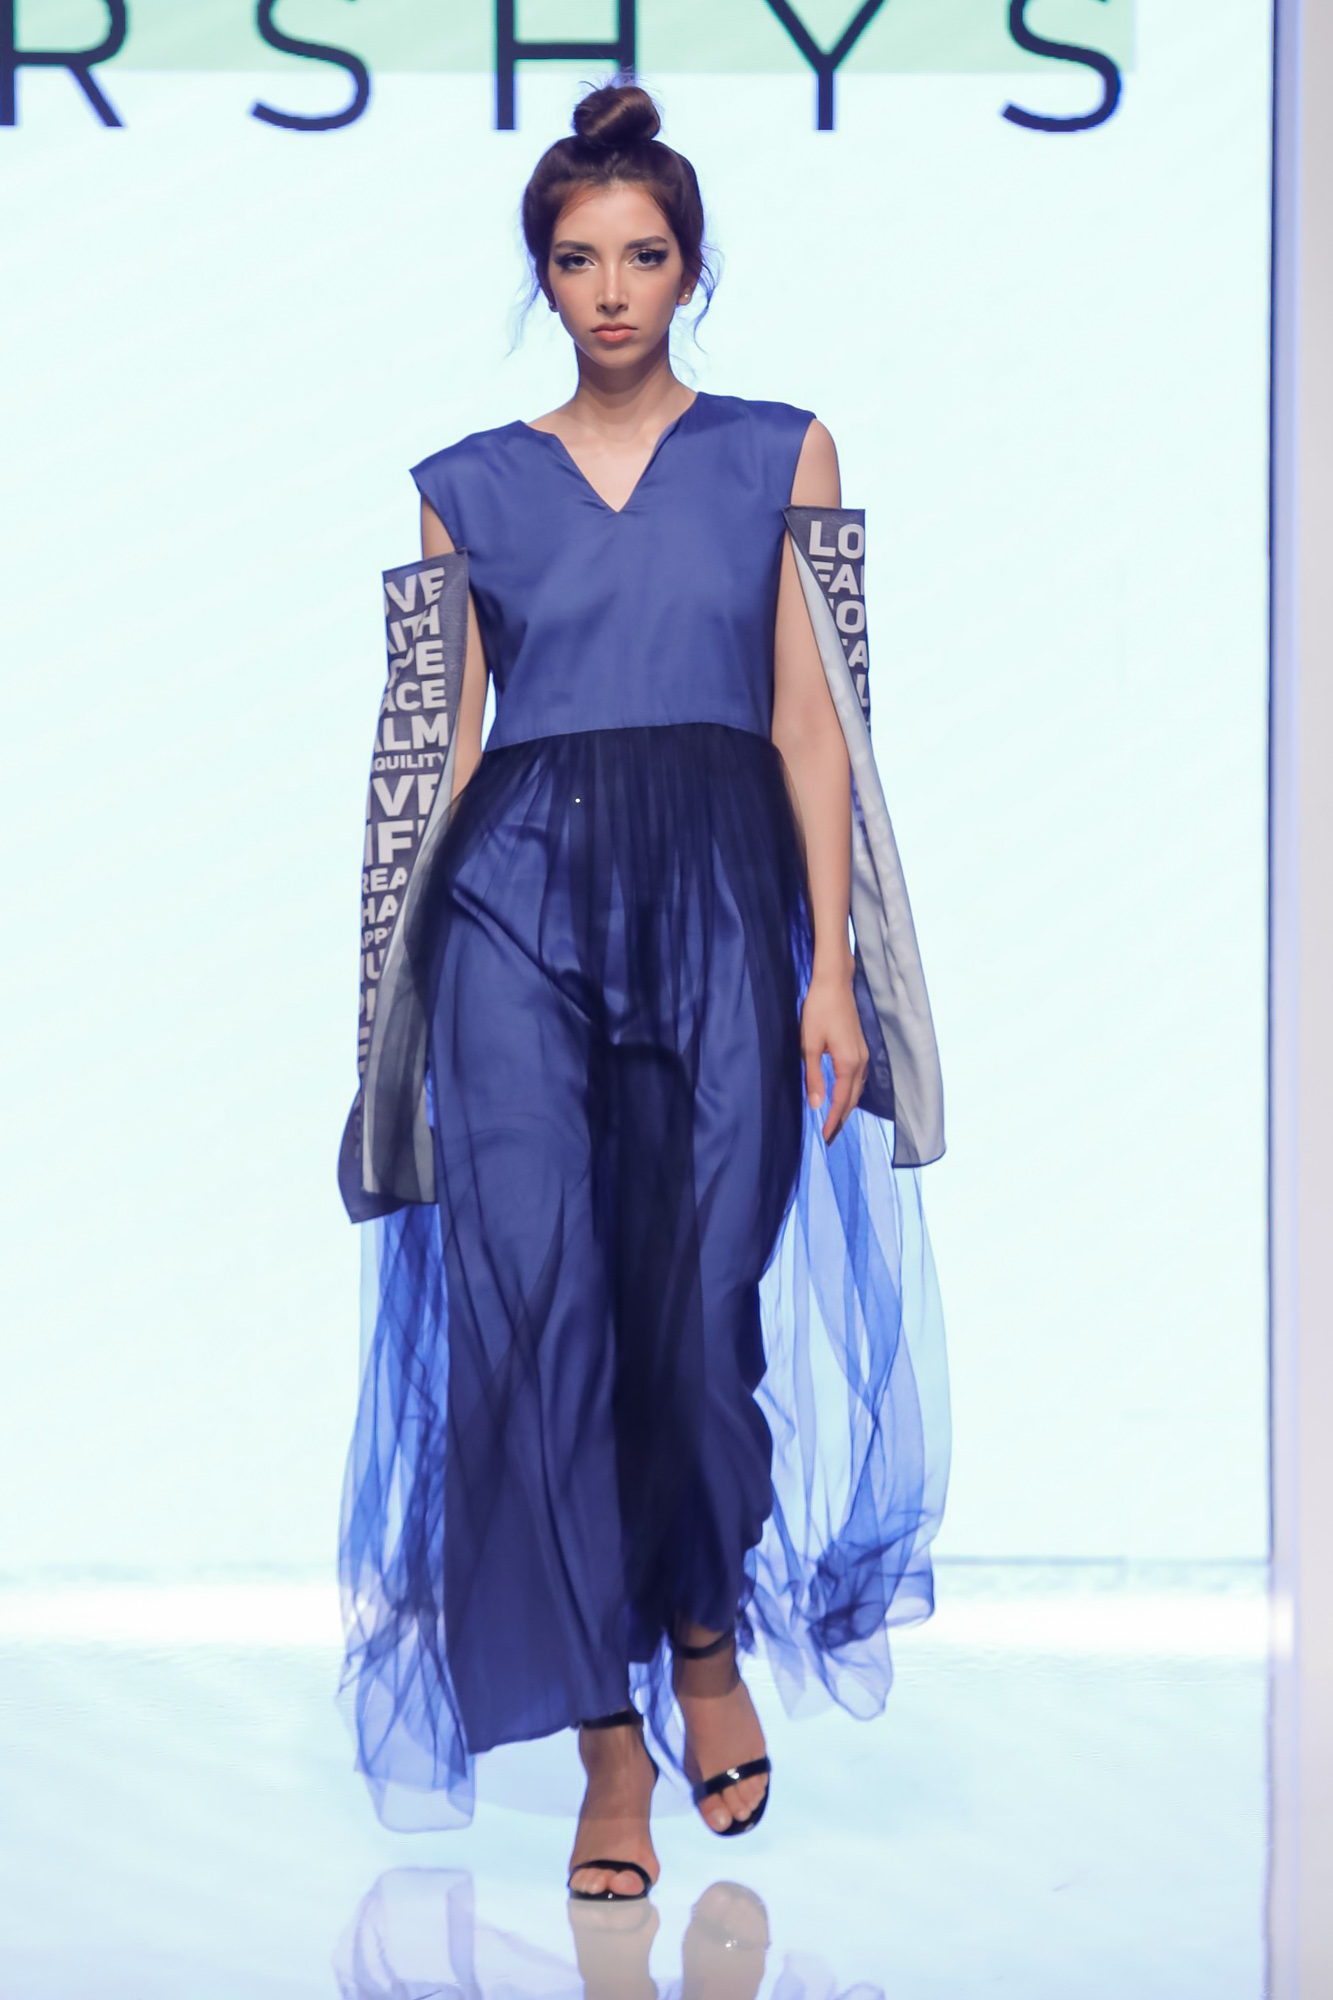 ARSHYS Resort 2020 Collection Arab Fashion Week in Dubai